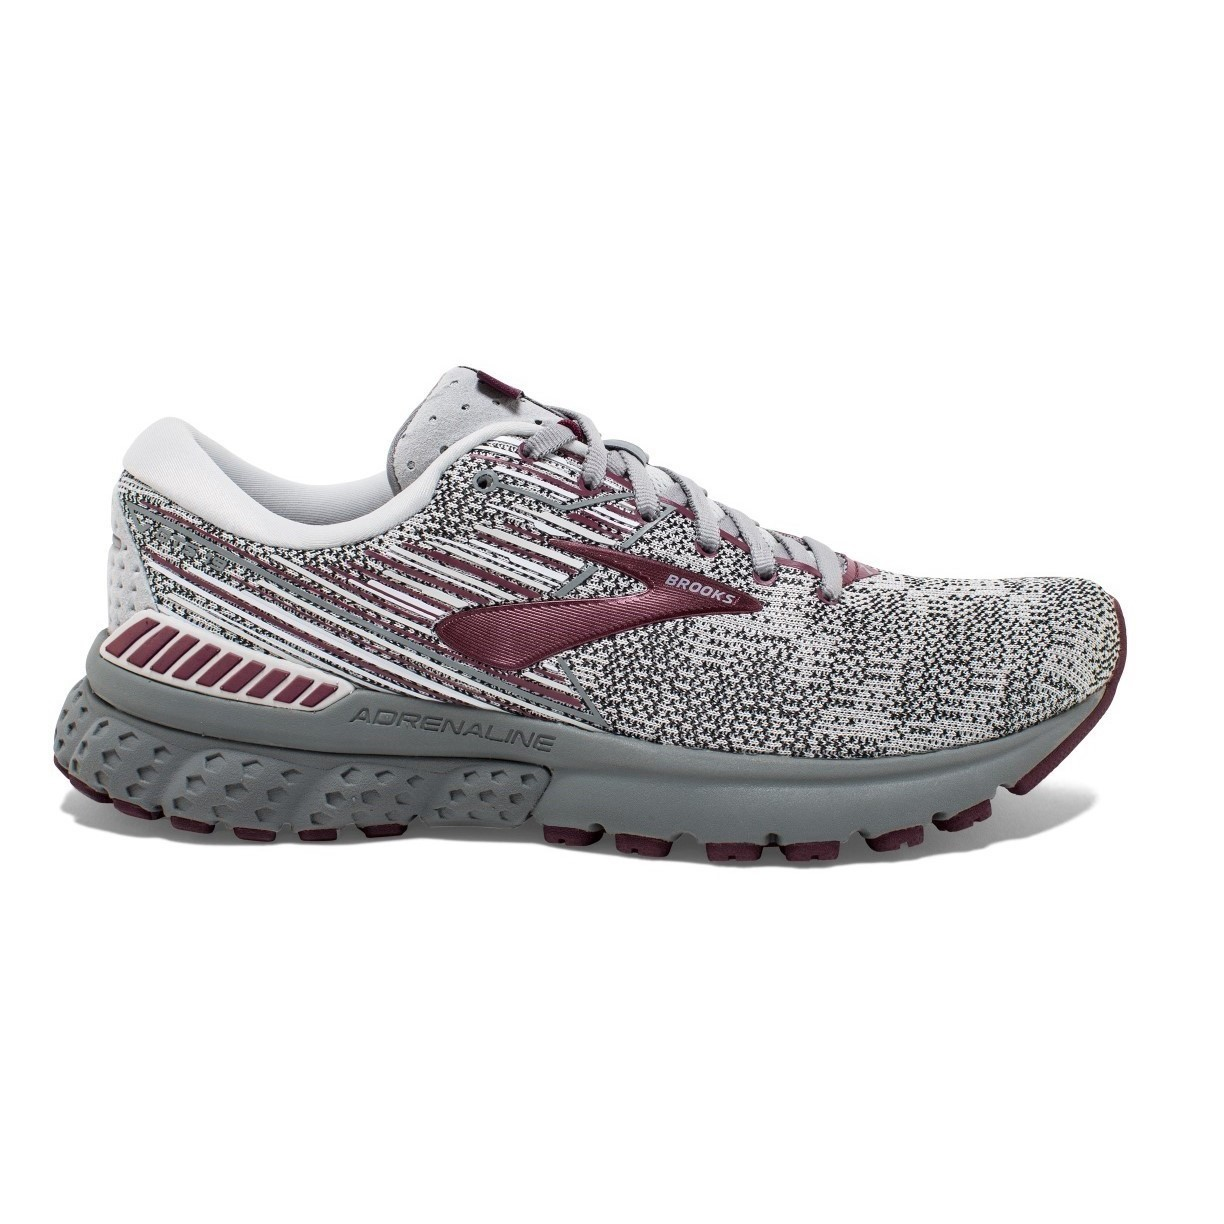 9b7b776f08e Brooks Adrenaline GTS 19 Knit - Womens Running Shoes - Grey White ...